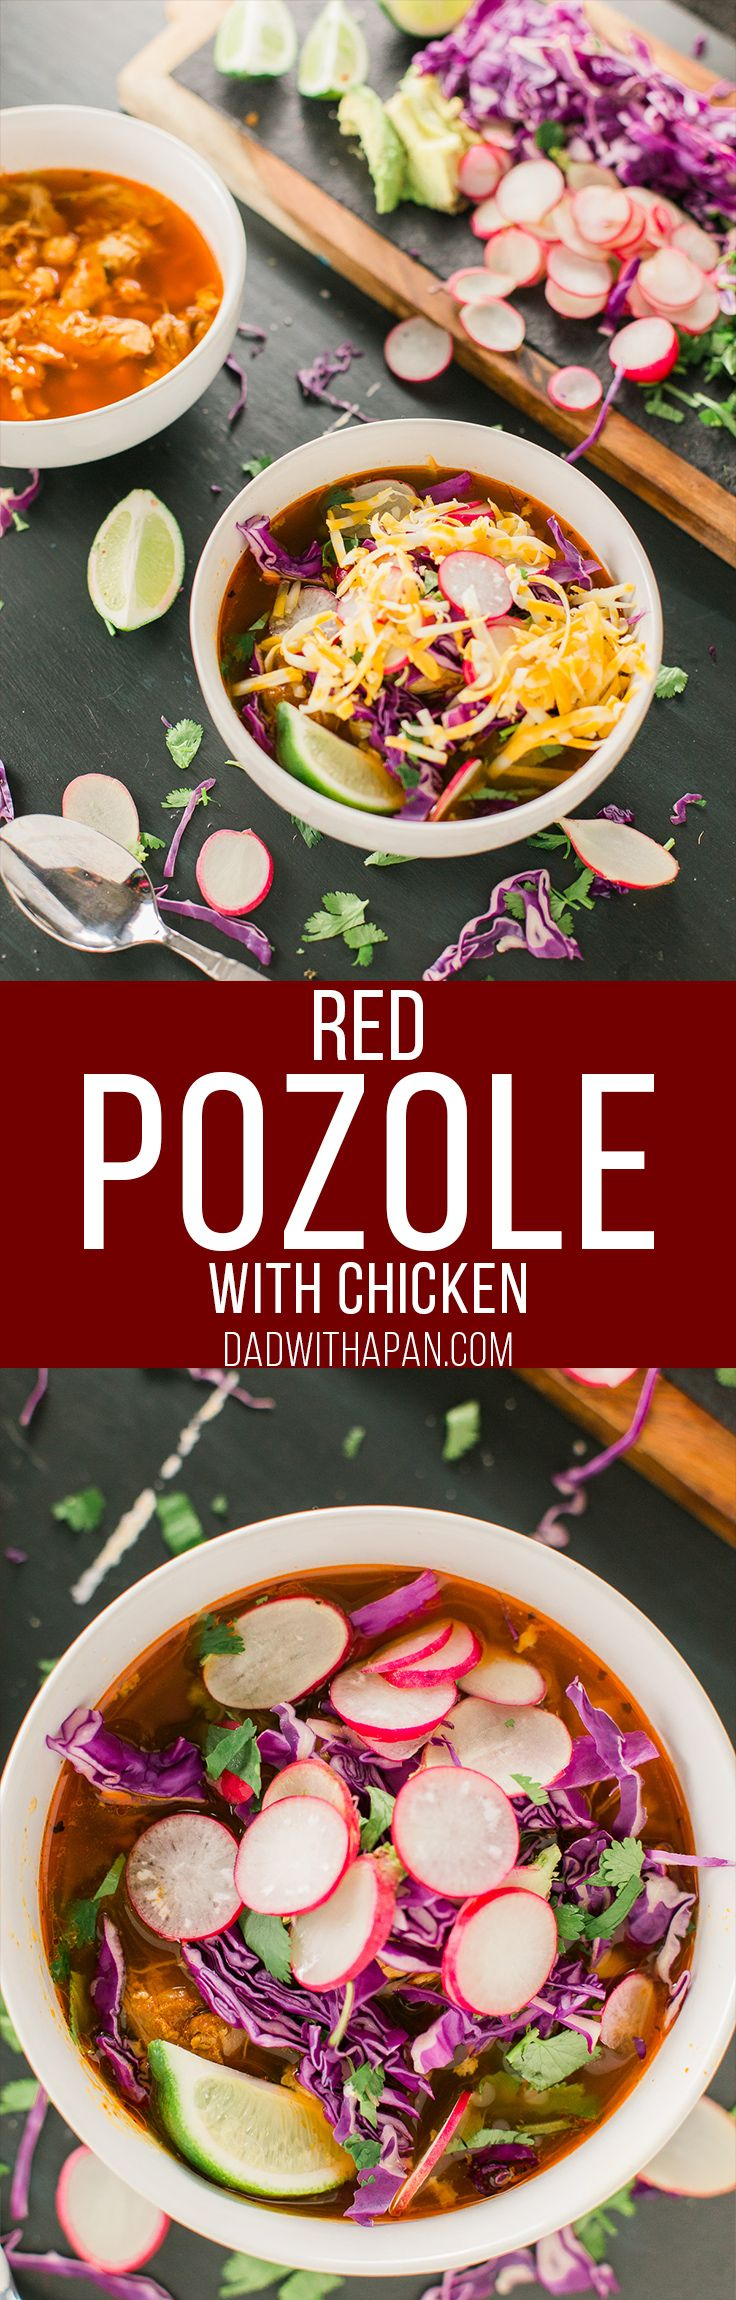 A from-scratch Red Pozole with Chicken recipe that is SUPER easy to make!. This is by far one of my favorite soups!